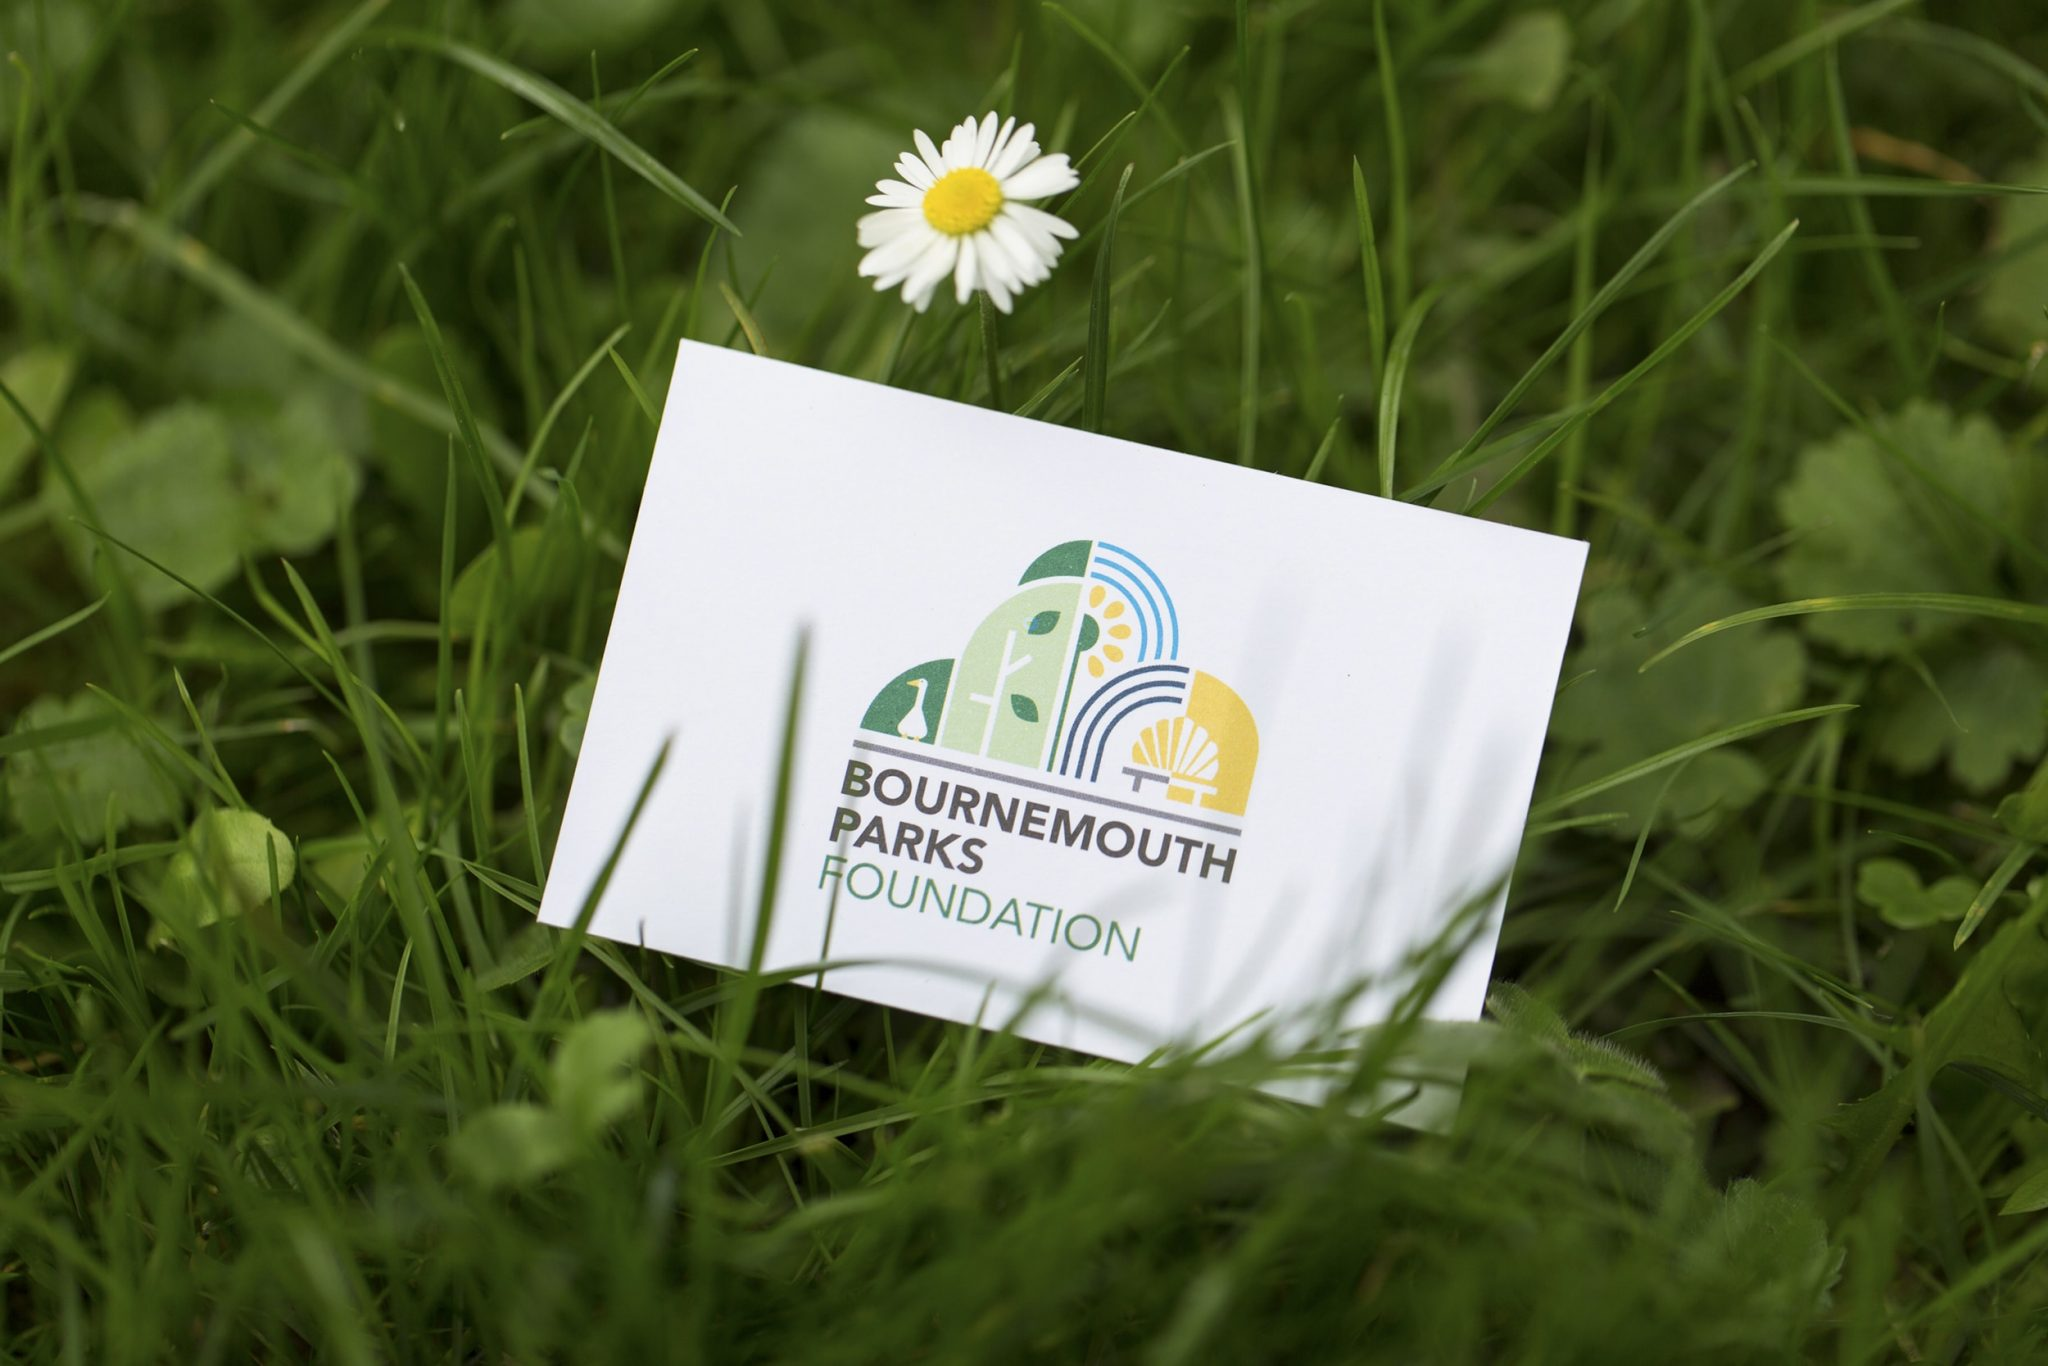 Bournemouth Parks Foundation